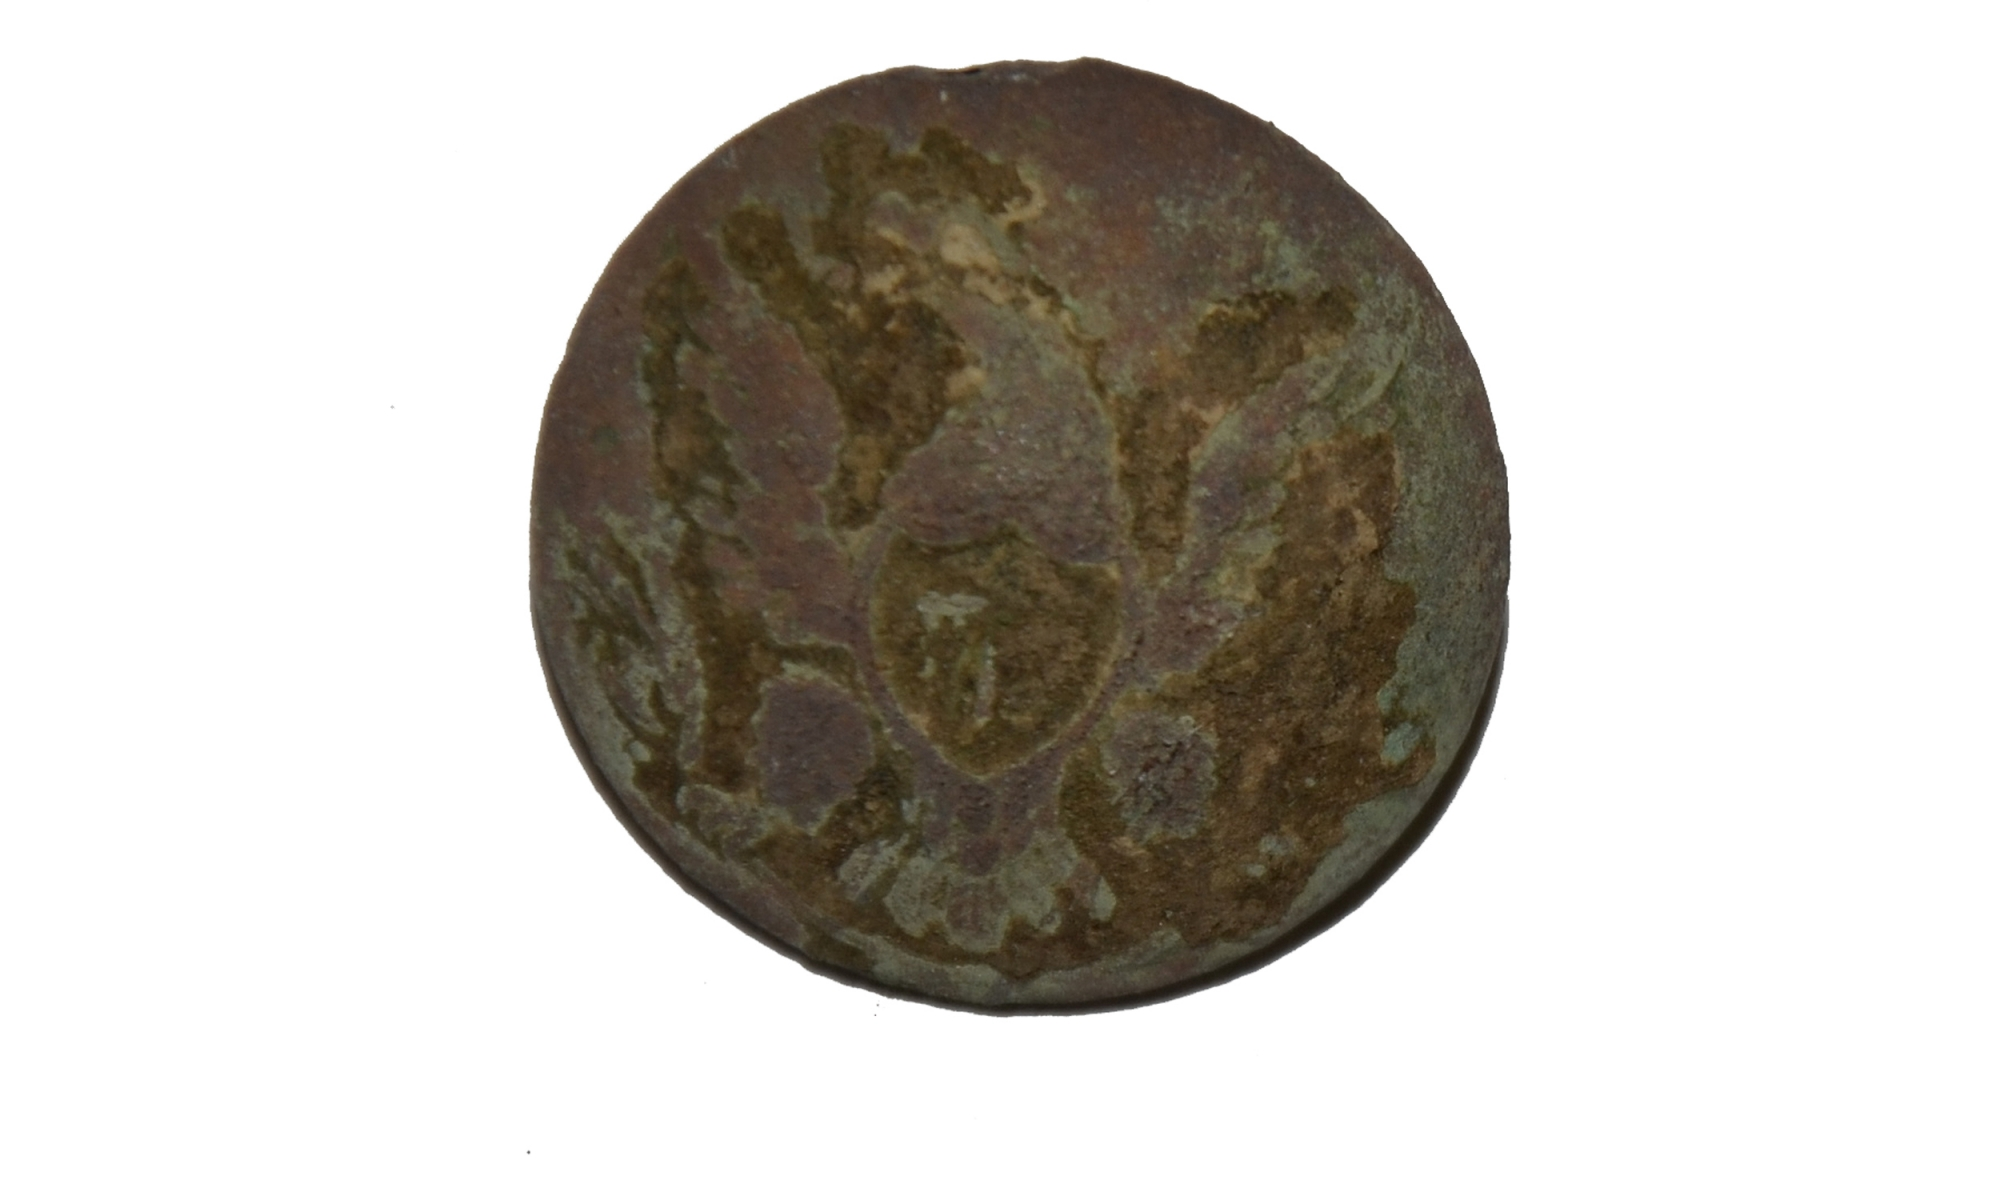 LARGE US GENERAL SERVICE EAGLE JACKET BUTTON RECOVERED ON CULP'S HILL, GETTYSBURG